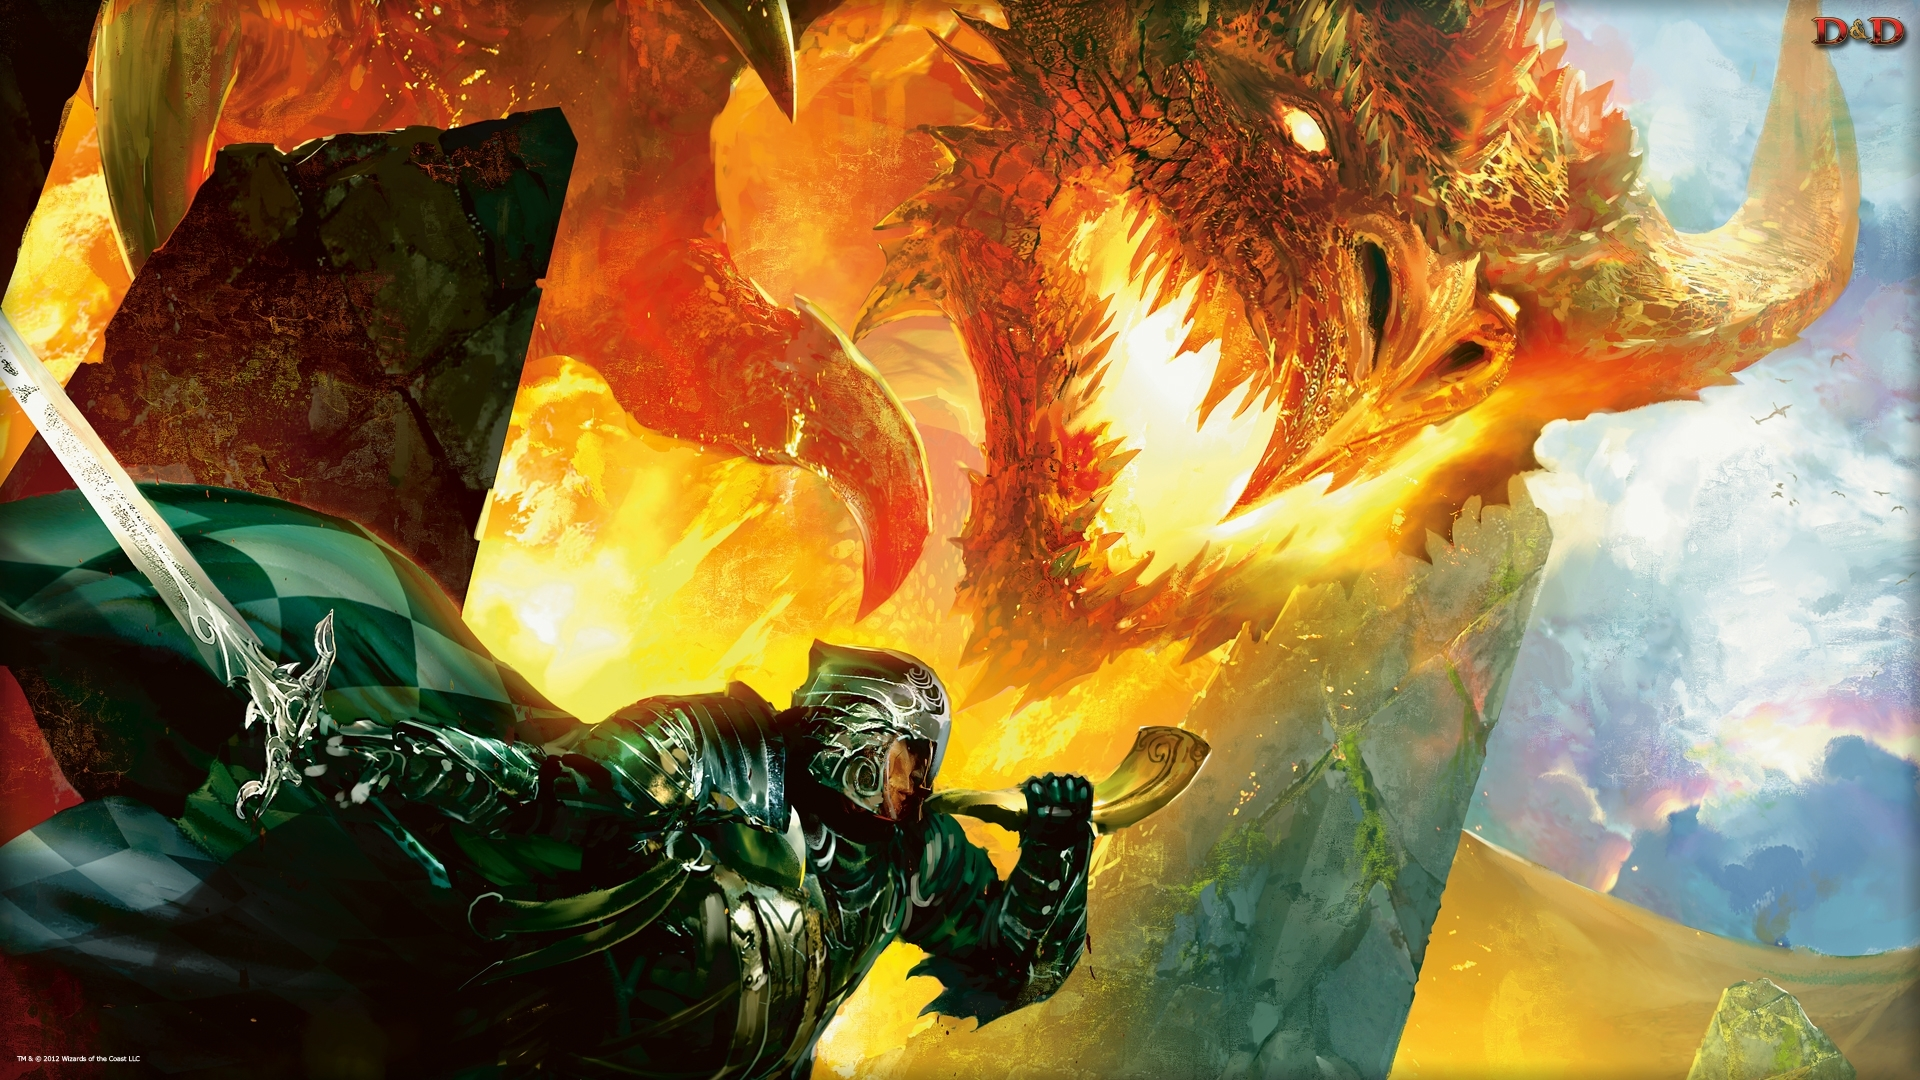 download the dungeons & dragons next wallpaper